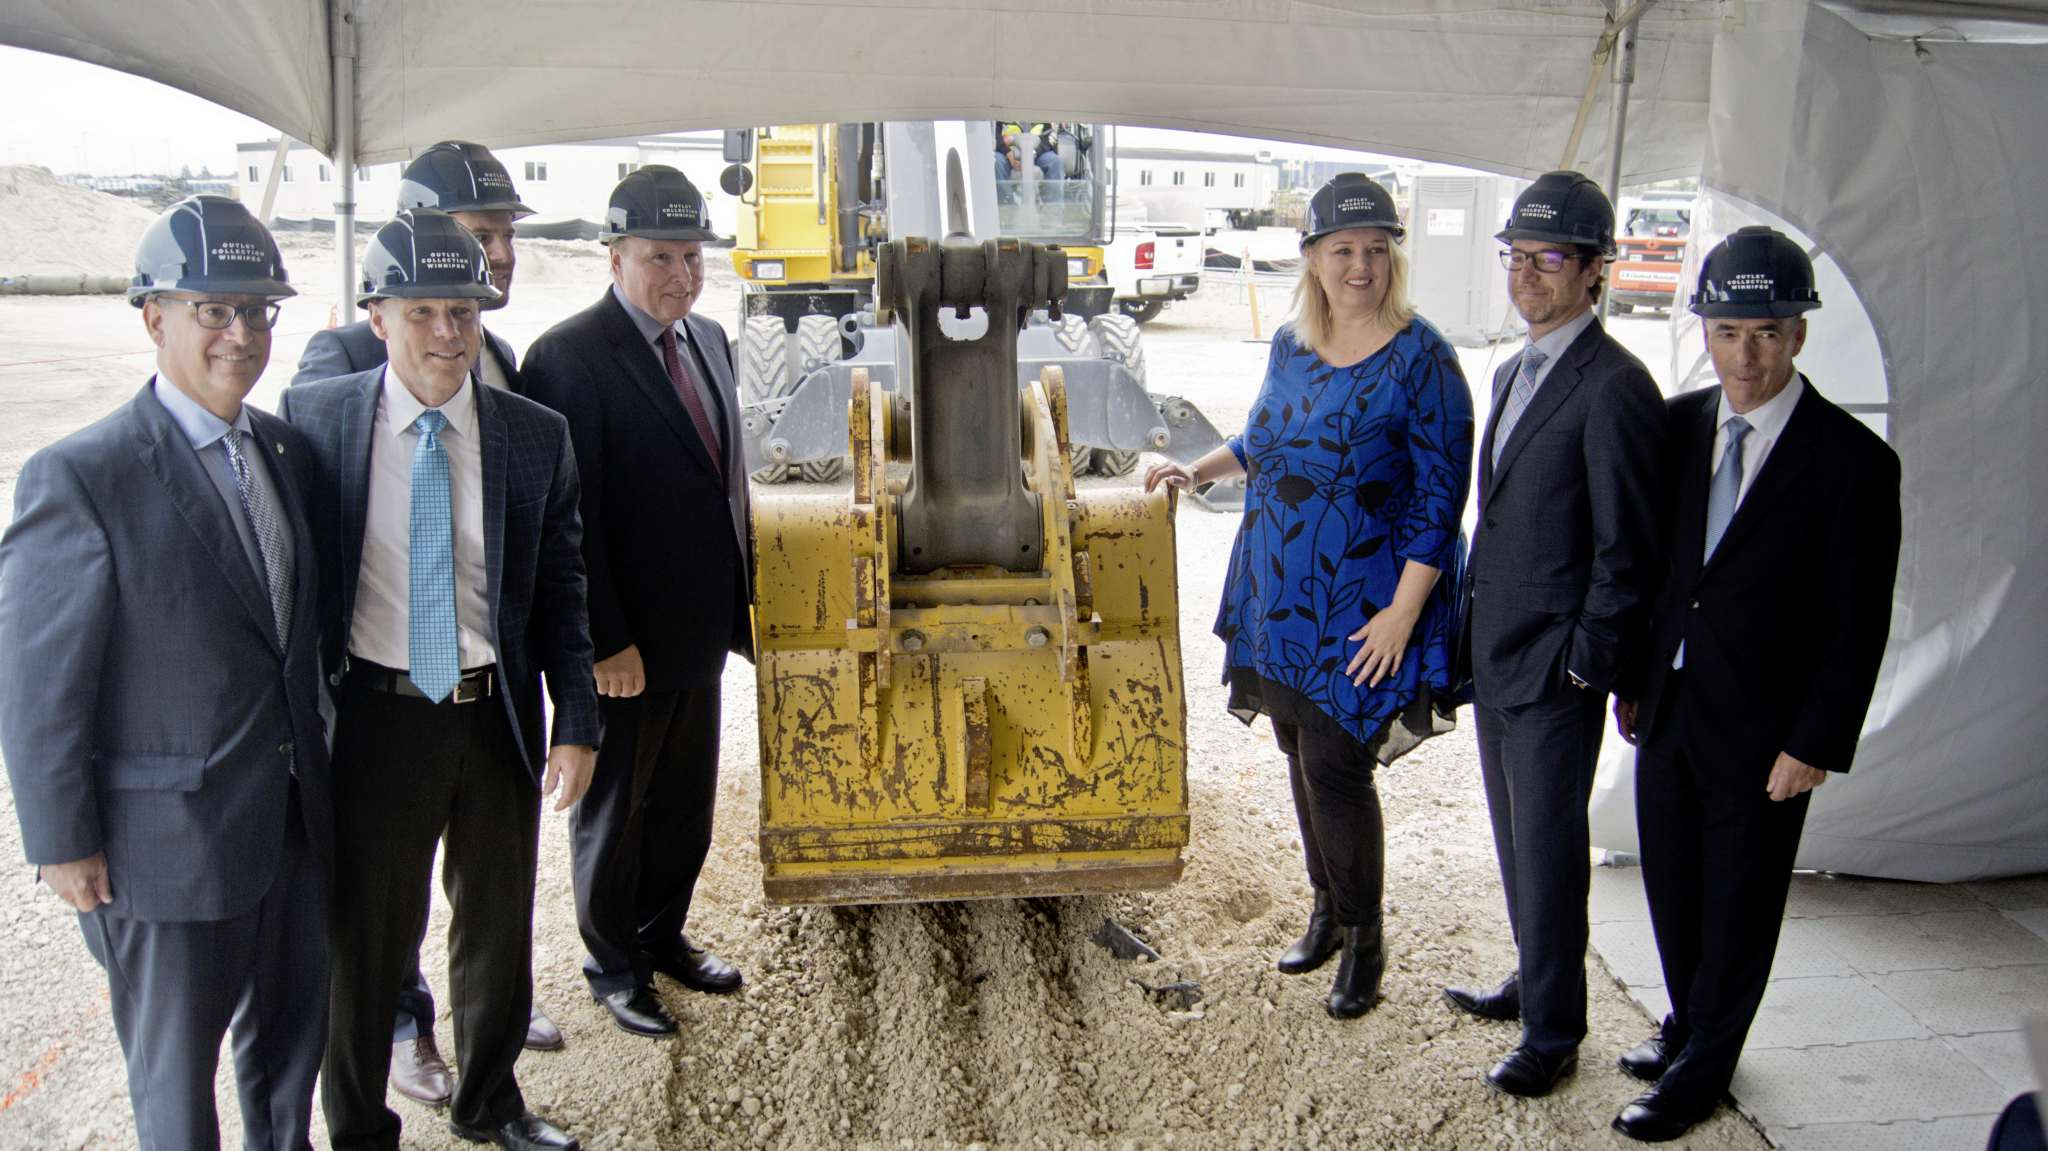 Representatives of Ivanhoé Cambridge, Forster Projects, and Harvard Developments, along with Coun. Marty Morantz and deputy premier Kerri Irvin-Ross break ground on the new Outlet Collection Winnipeg.